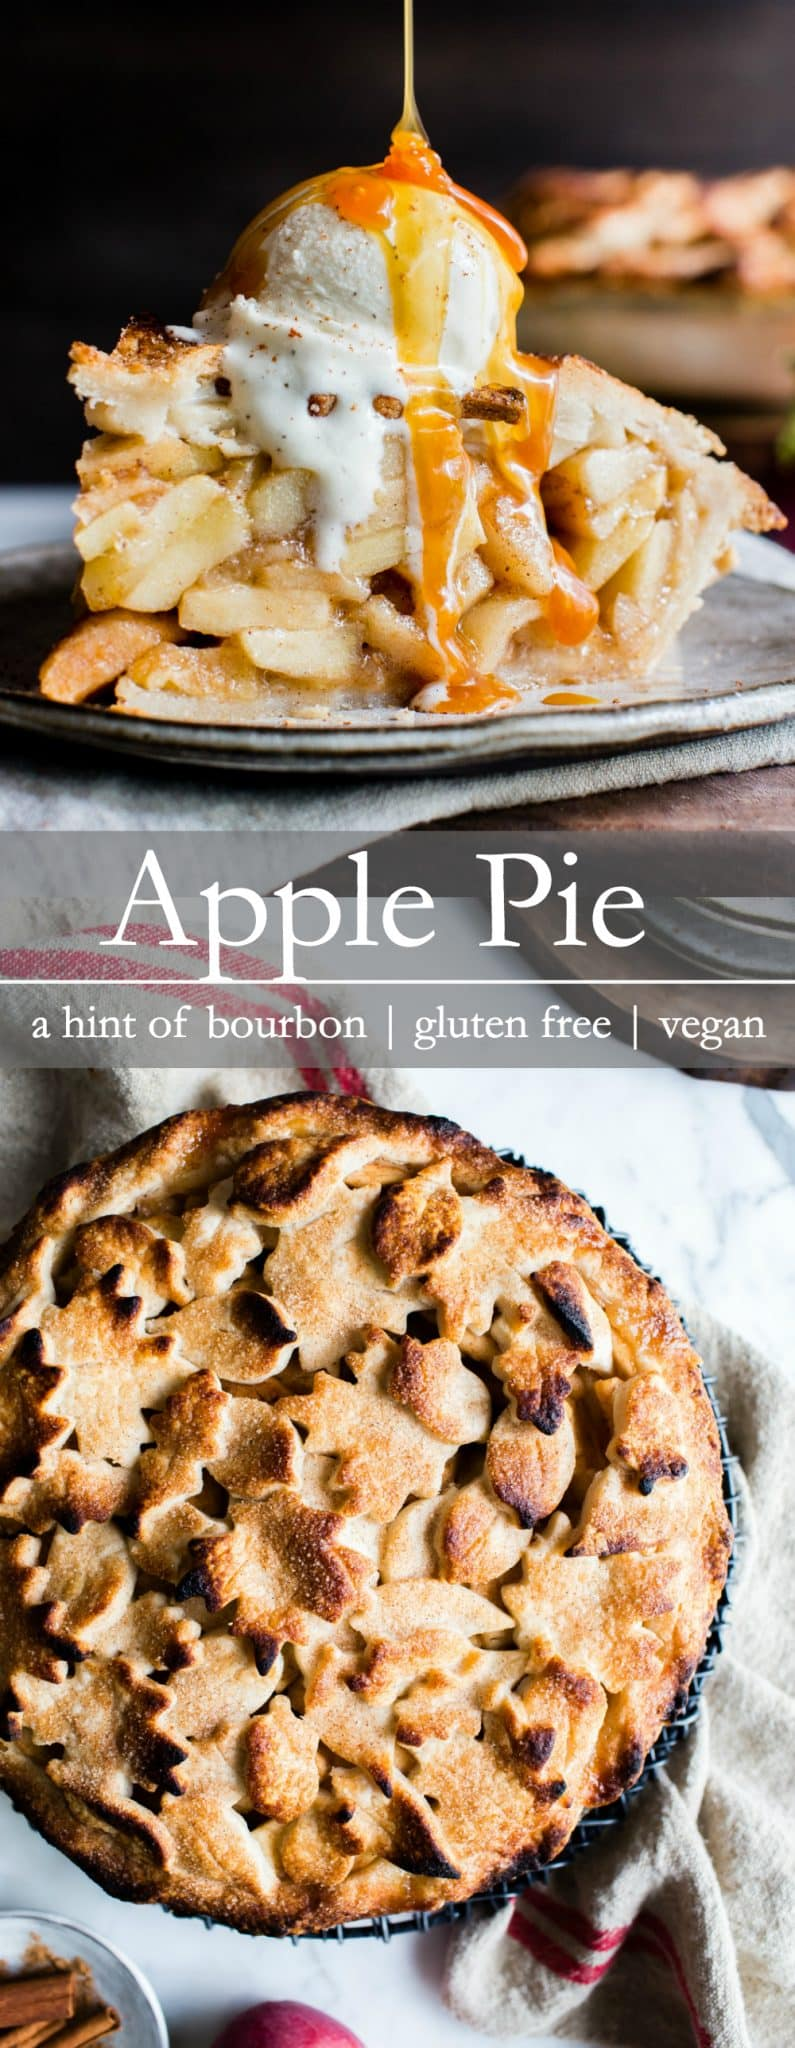 Apple packed, slightly sweet with a hint of bourbon, this Apple Pie is gluten free + vegan, but you'd never know it. A tender-flakey coconut oil pastry with an easy cut out top crust makes this Apple Pie simple to assemble and fun to share. Apple pie for everyone! Hooray! #GlutenFreeApplePie #VeganApplePie #GlutenFreeVeganApplePie